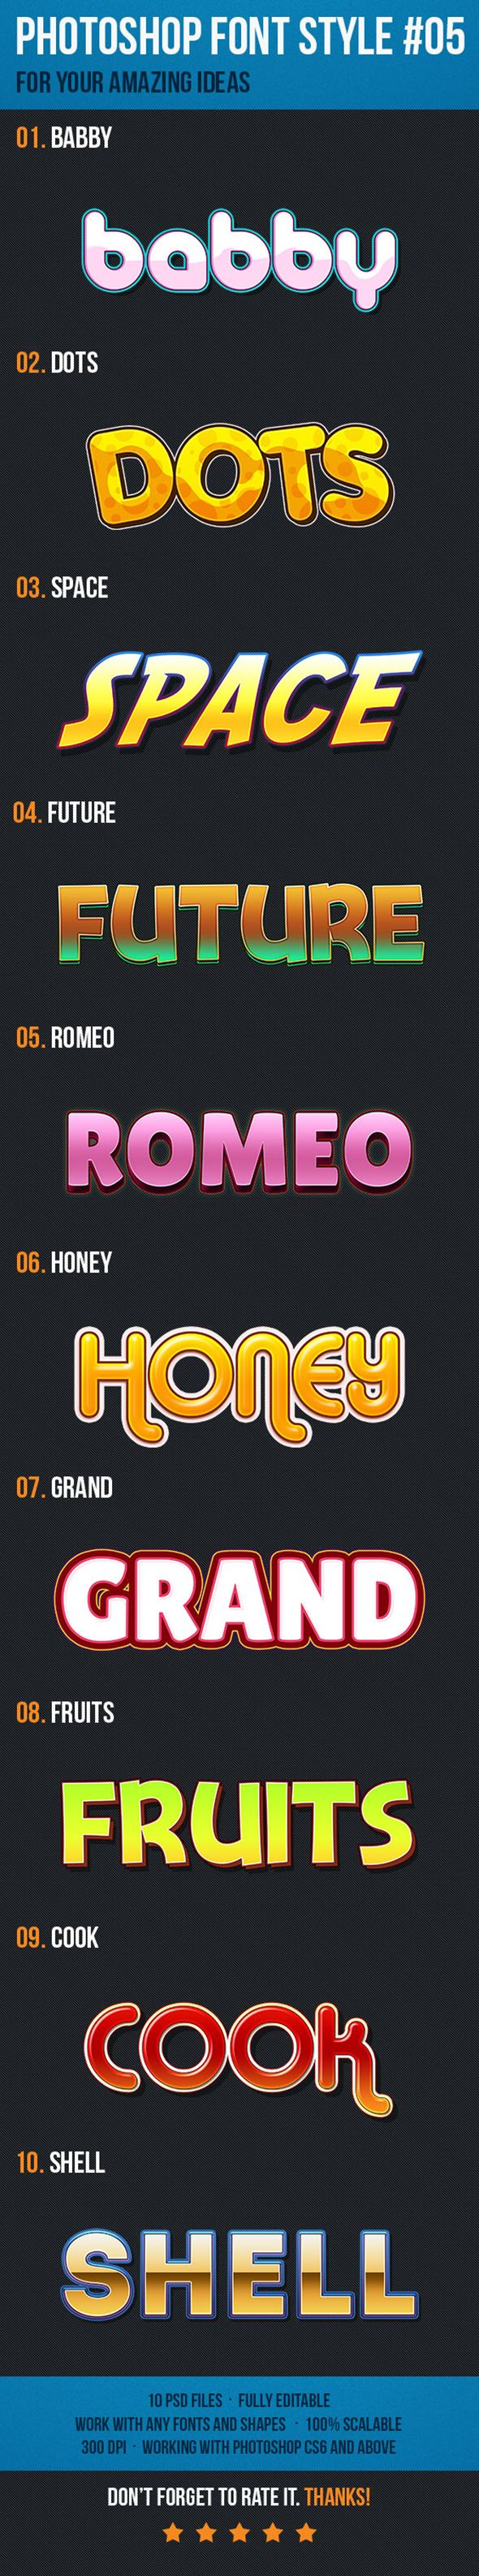 10 Font Style for Game Logo Text Effect. Download here: http://graphicriver.net/item/10-font-style-for-game-logo-05/15304614?ref=ksioks